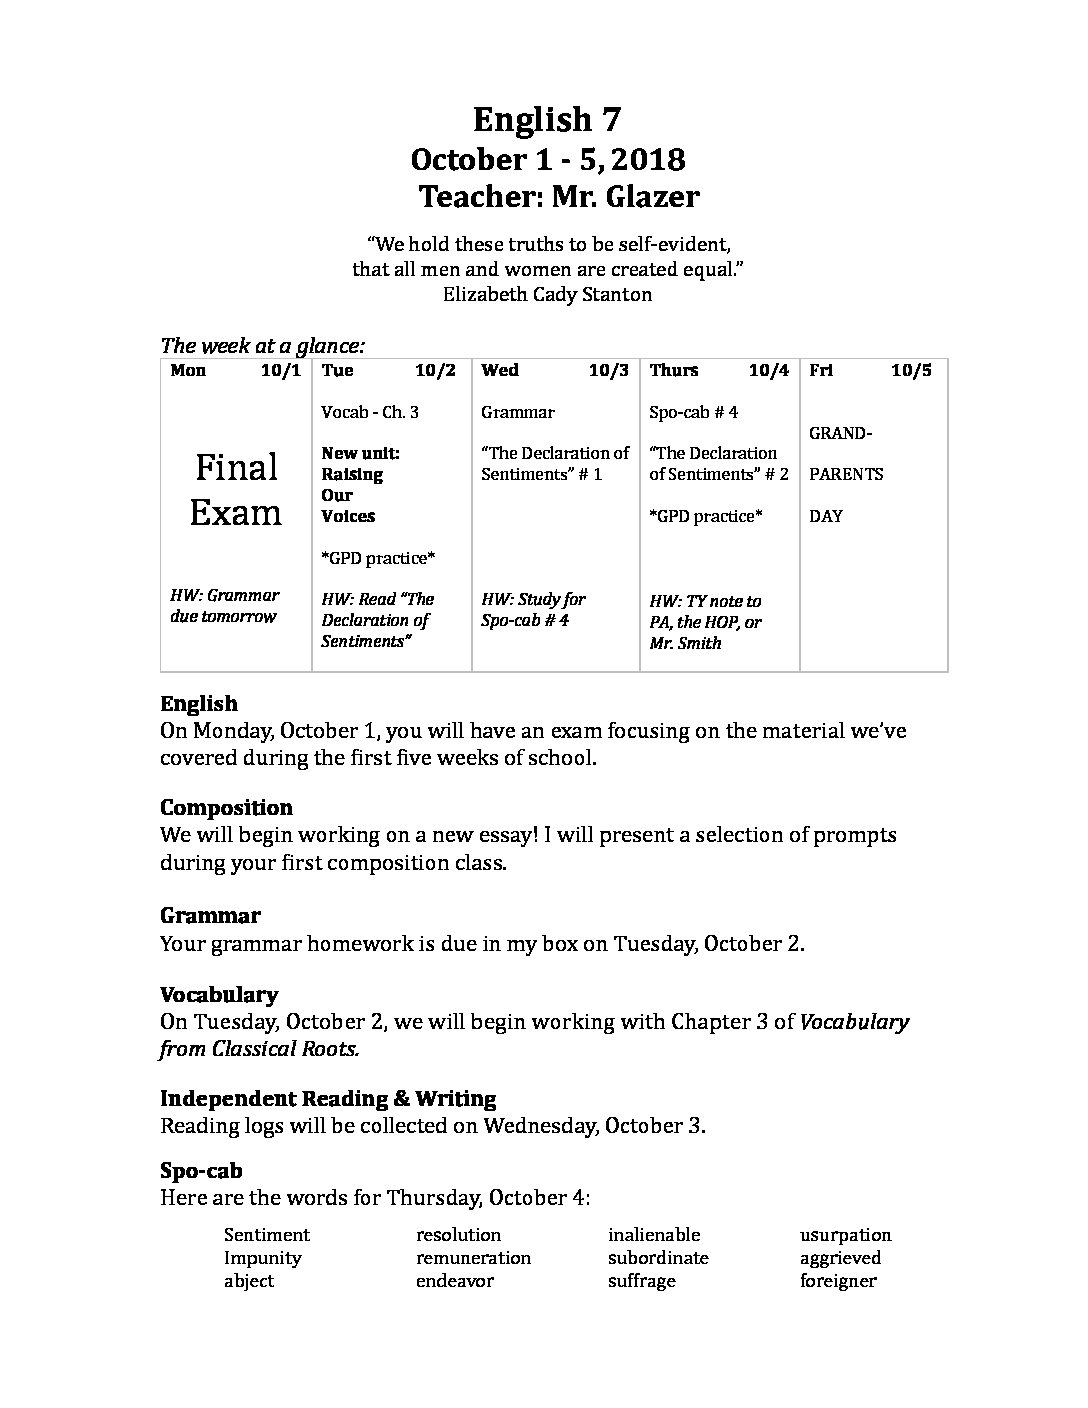 Apa Format Essay Example Paper Recent News Persuasive Essay Examples For High School also Thesis Of An Essay English  Oct     Crossroads Academy Persuasive Essays For High School